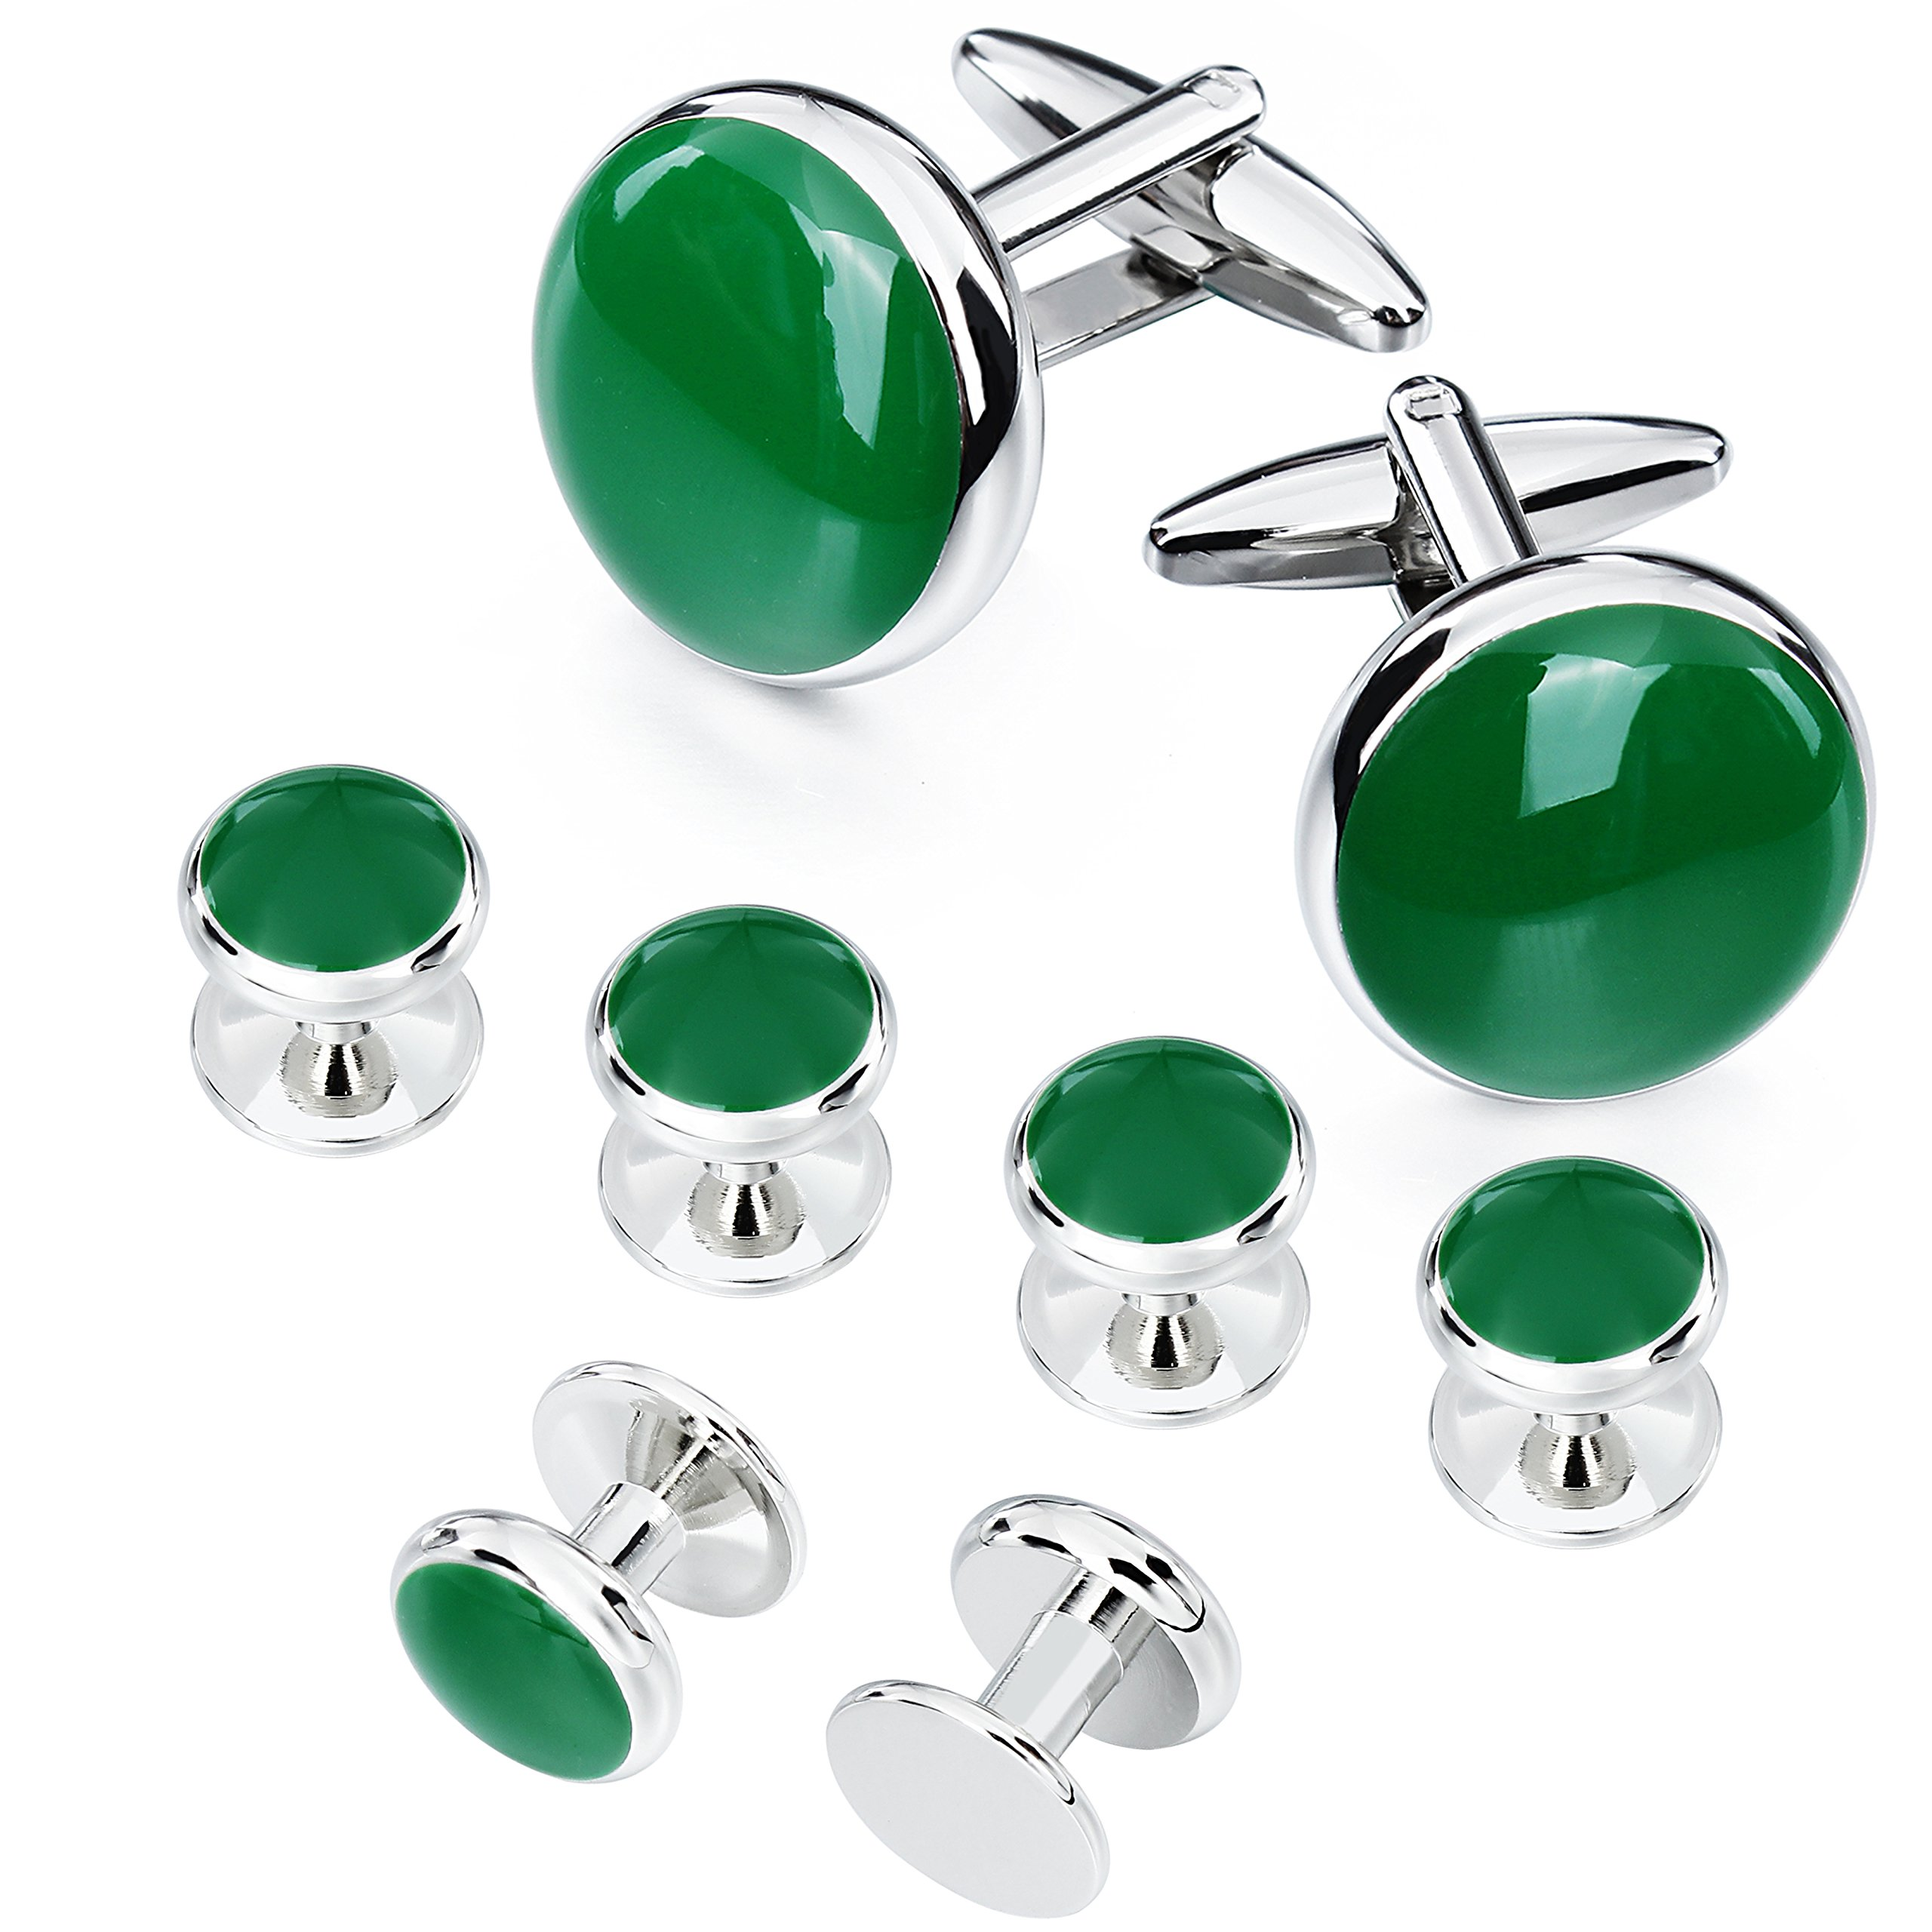 AMITER Cufflinks and Tuxedo Shirt Studs Set for Men Classic Deep Green Enamel Round Shape with Gift Box - Formal Business Wedding Anniversary Jewelry